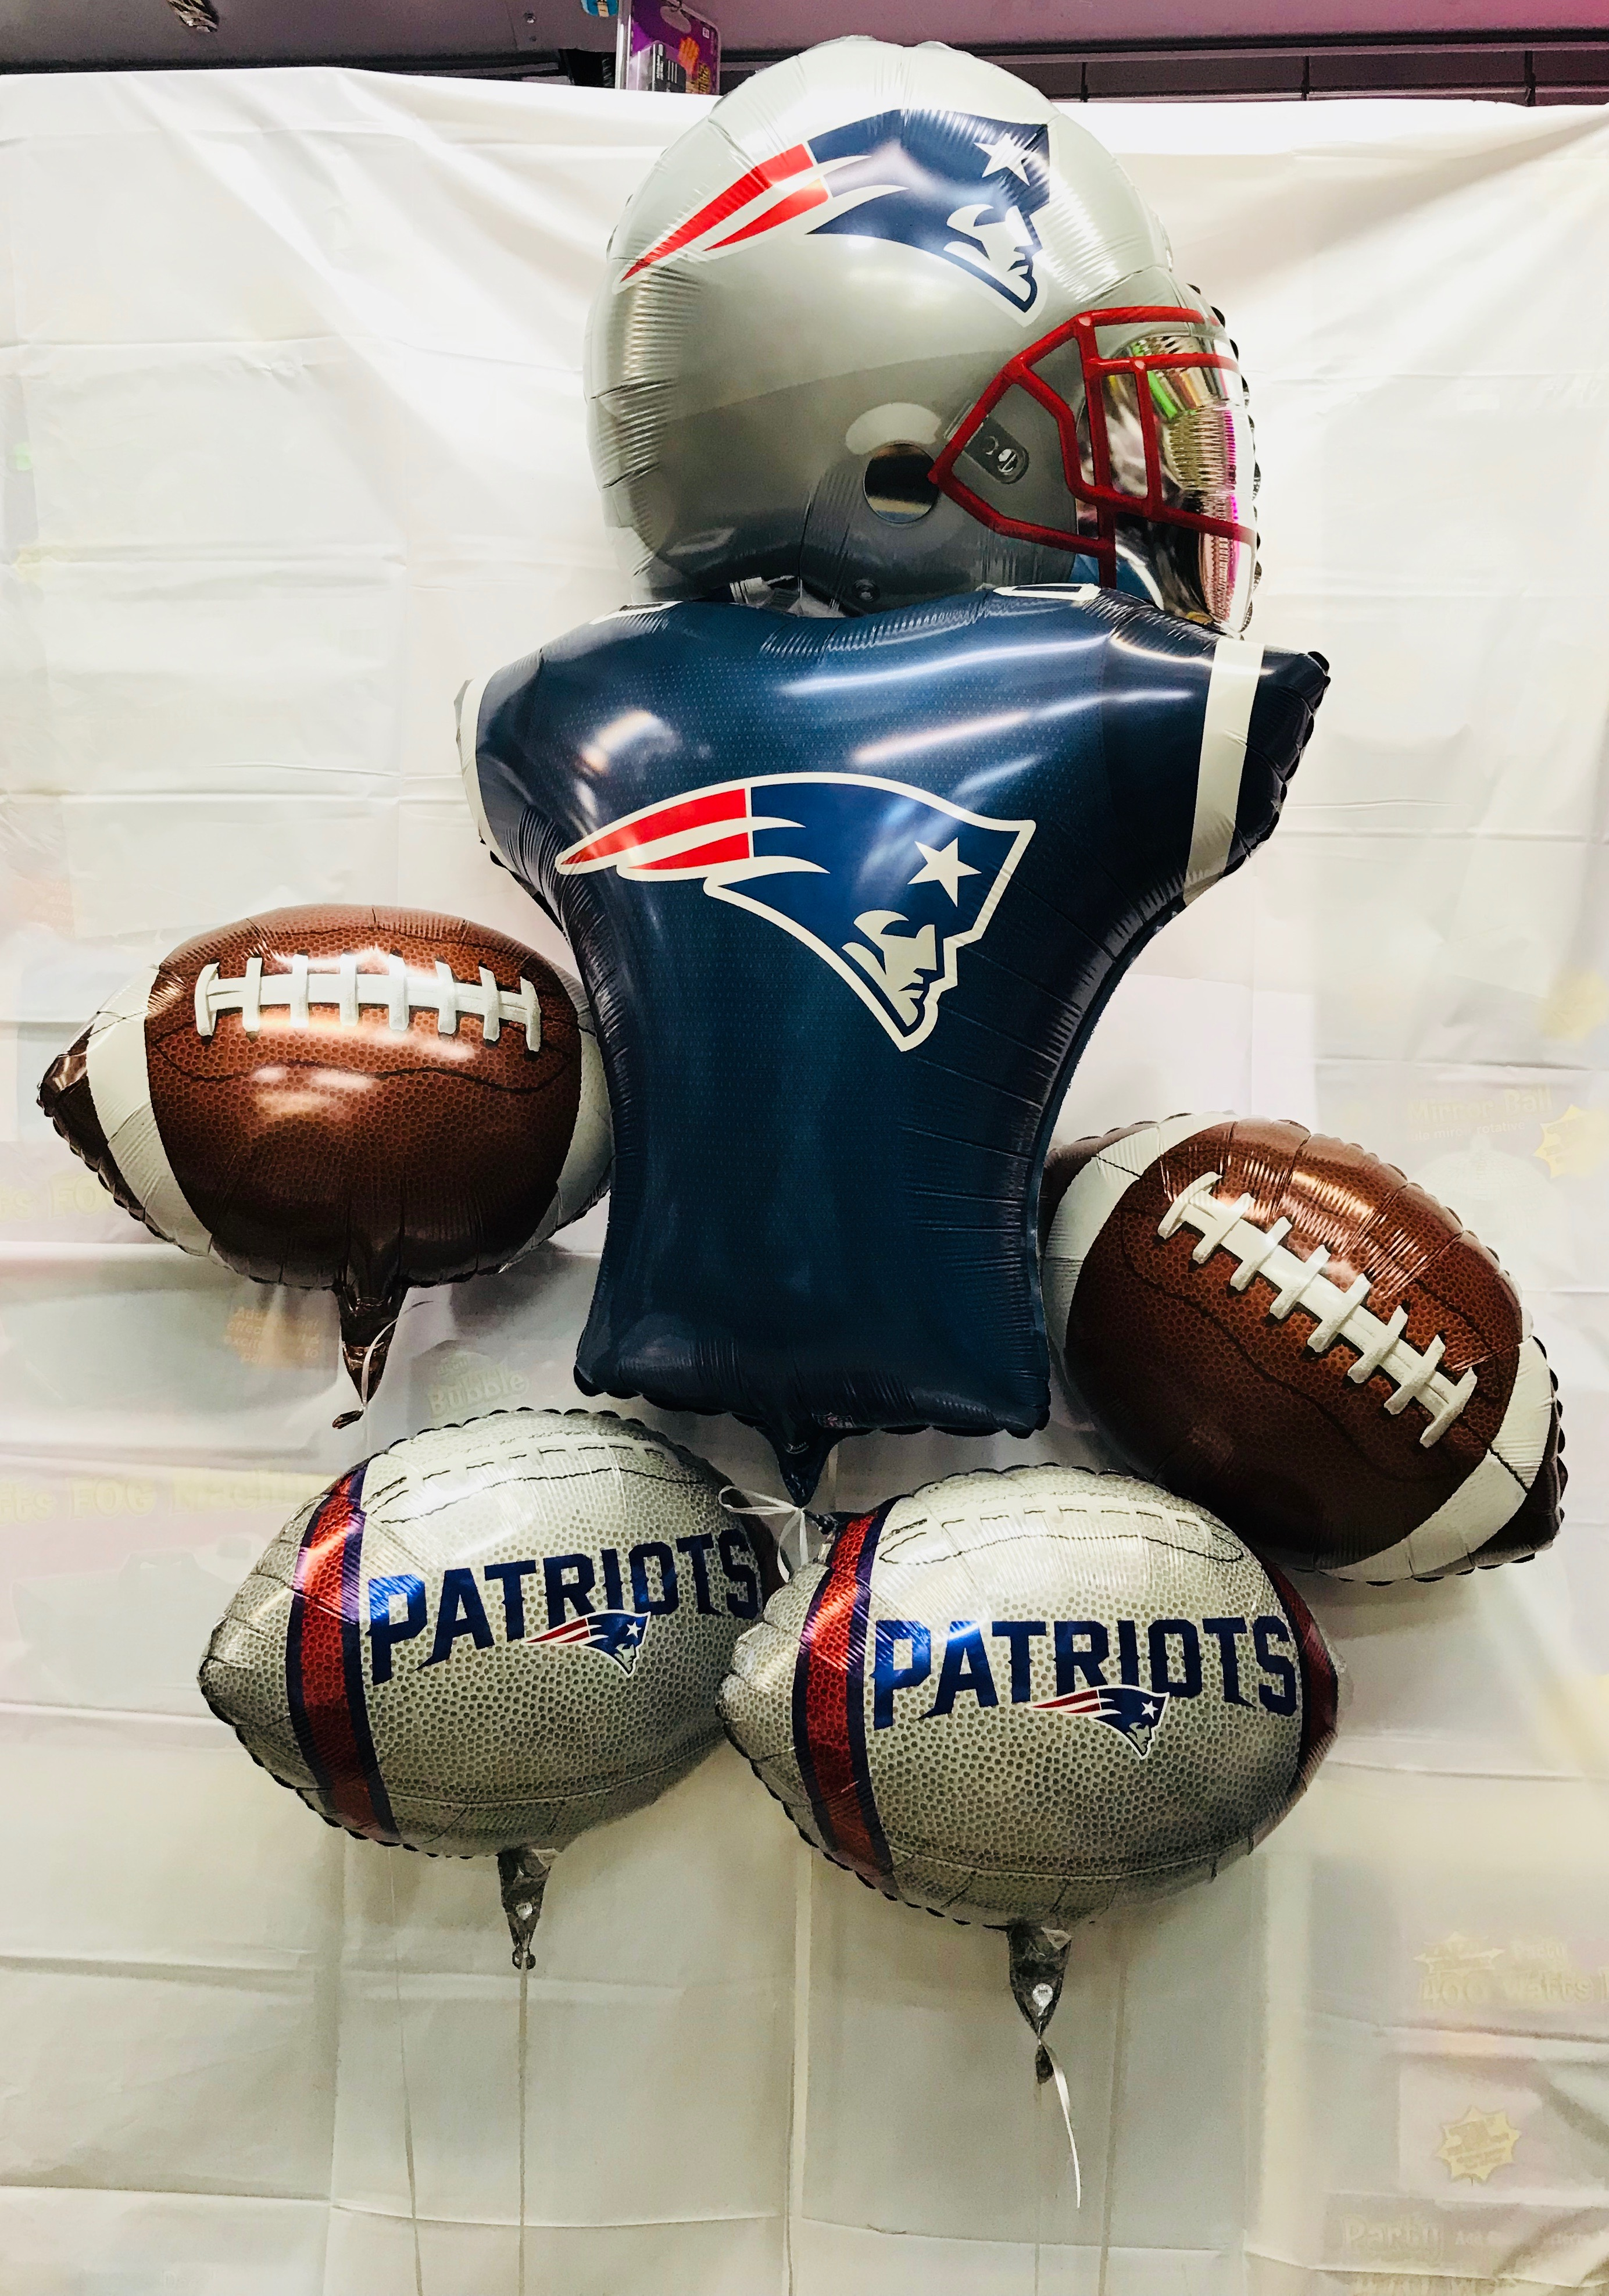 03c93cb8 New England Patriots Football Balloons Bouquet With Jumbo Helmet and Jersey